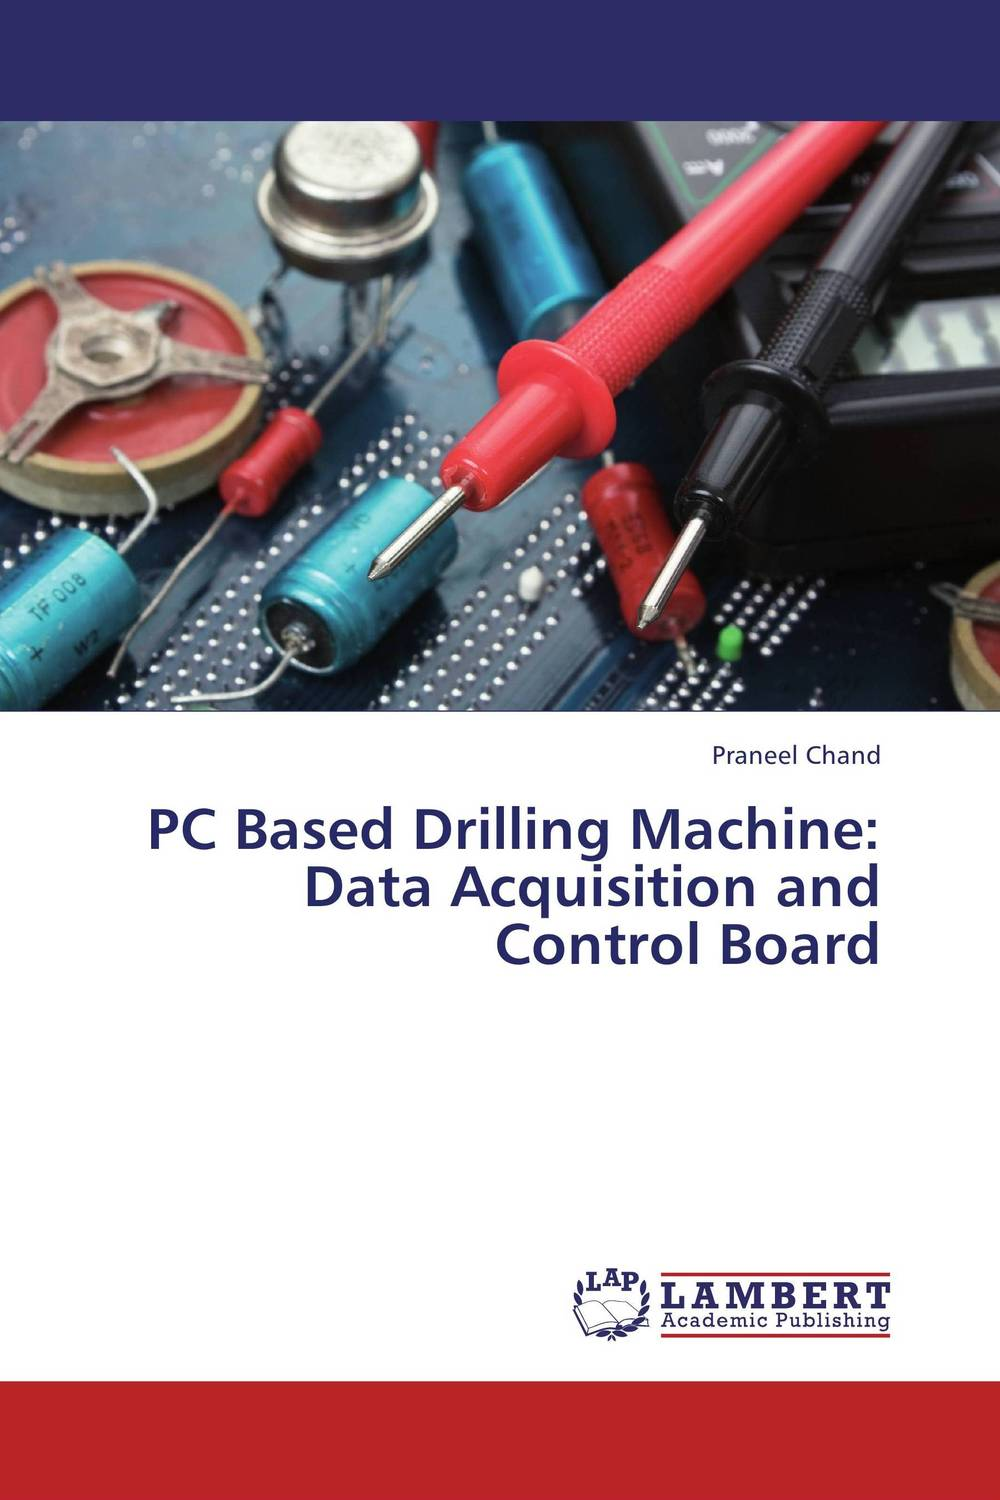 PC Based Drilling Machine: Data Acquisition and Control Board